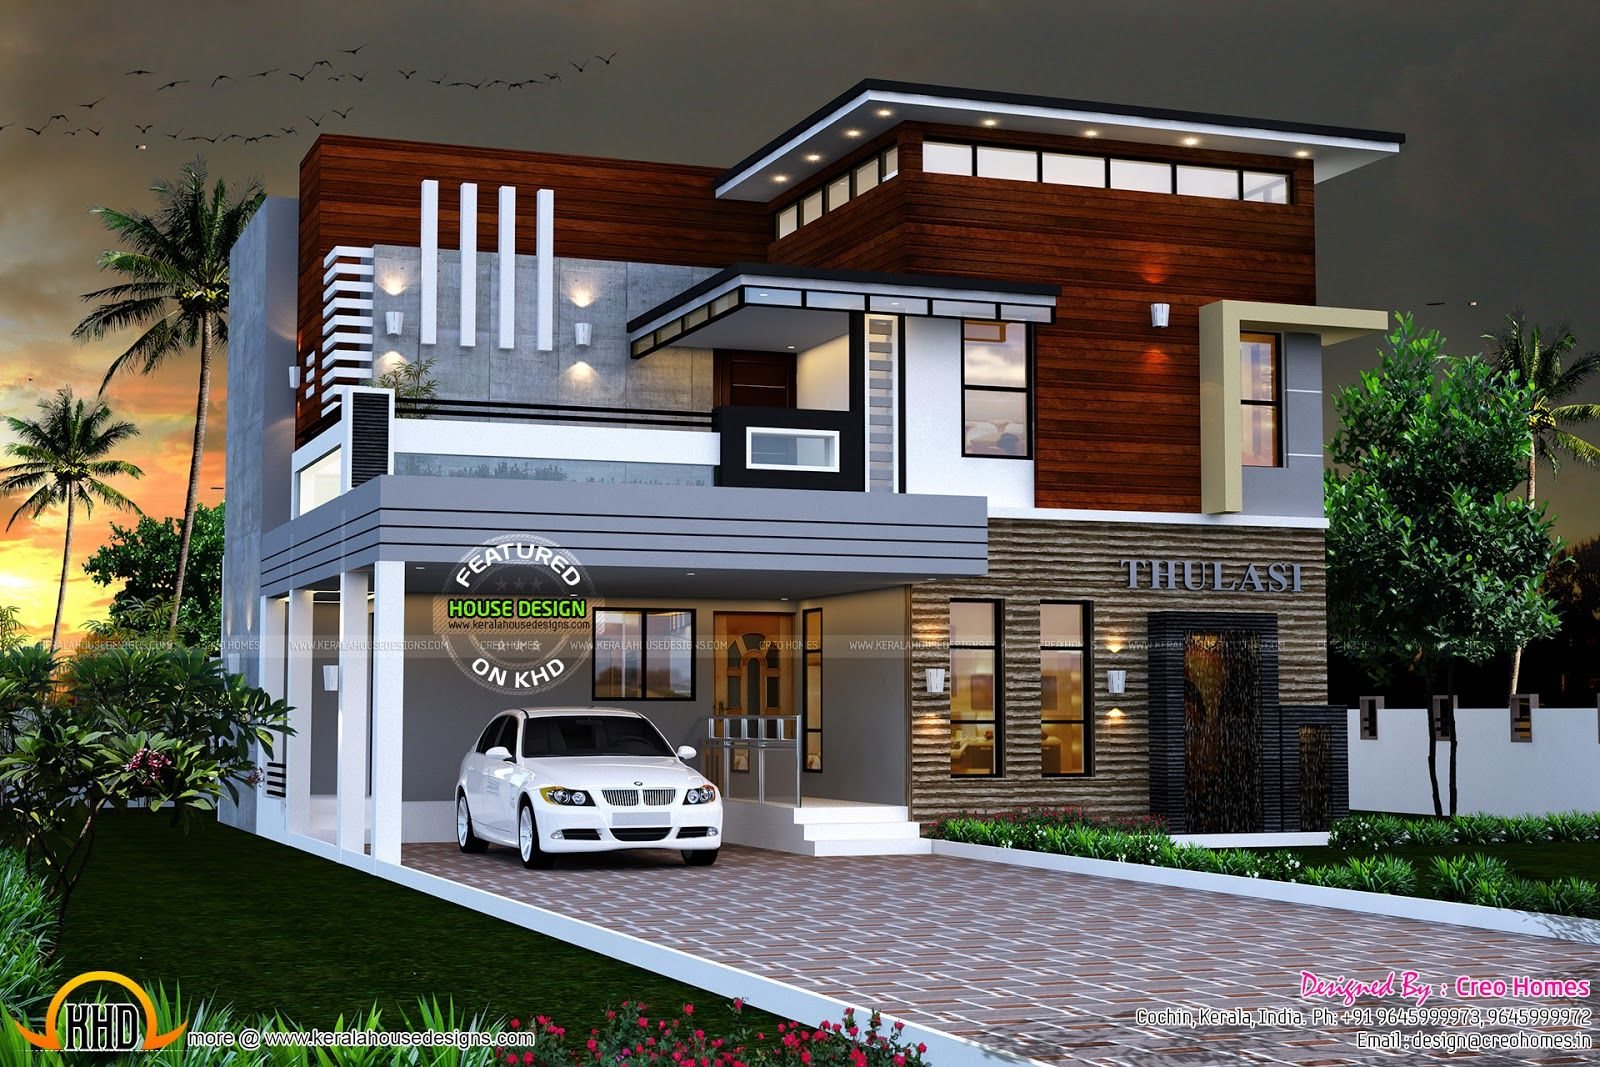 Eterior design modern small house architecture building for Top 10 house design